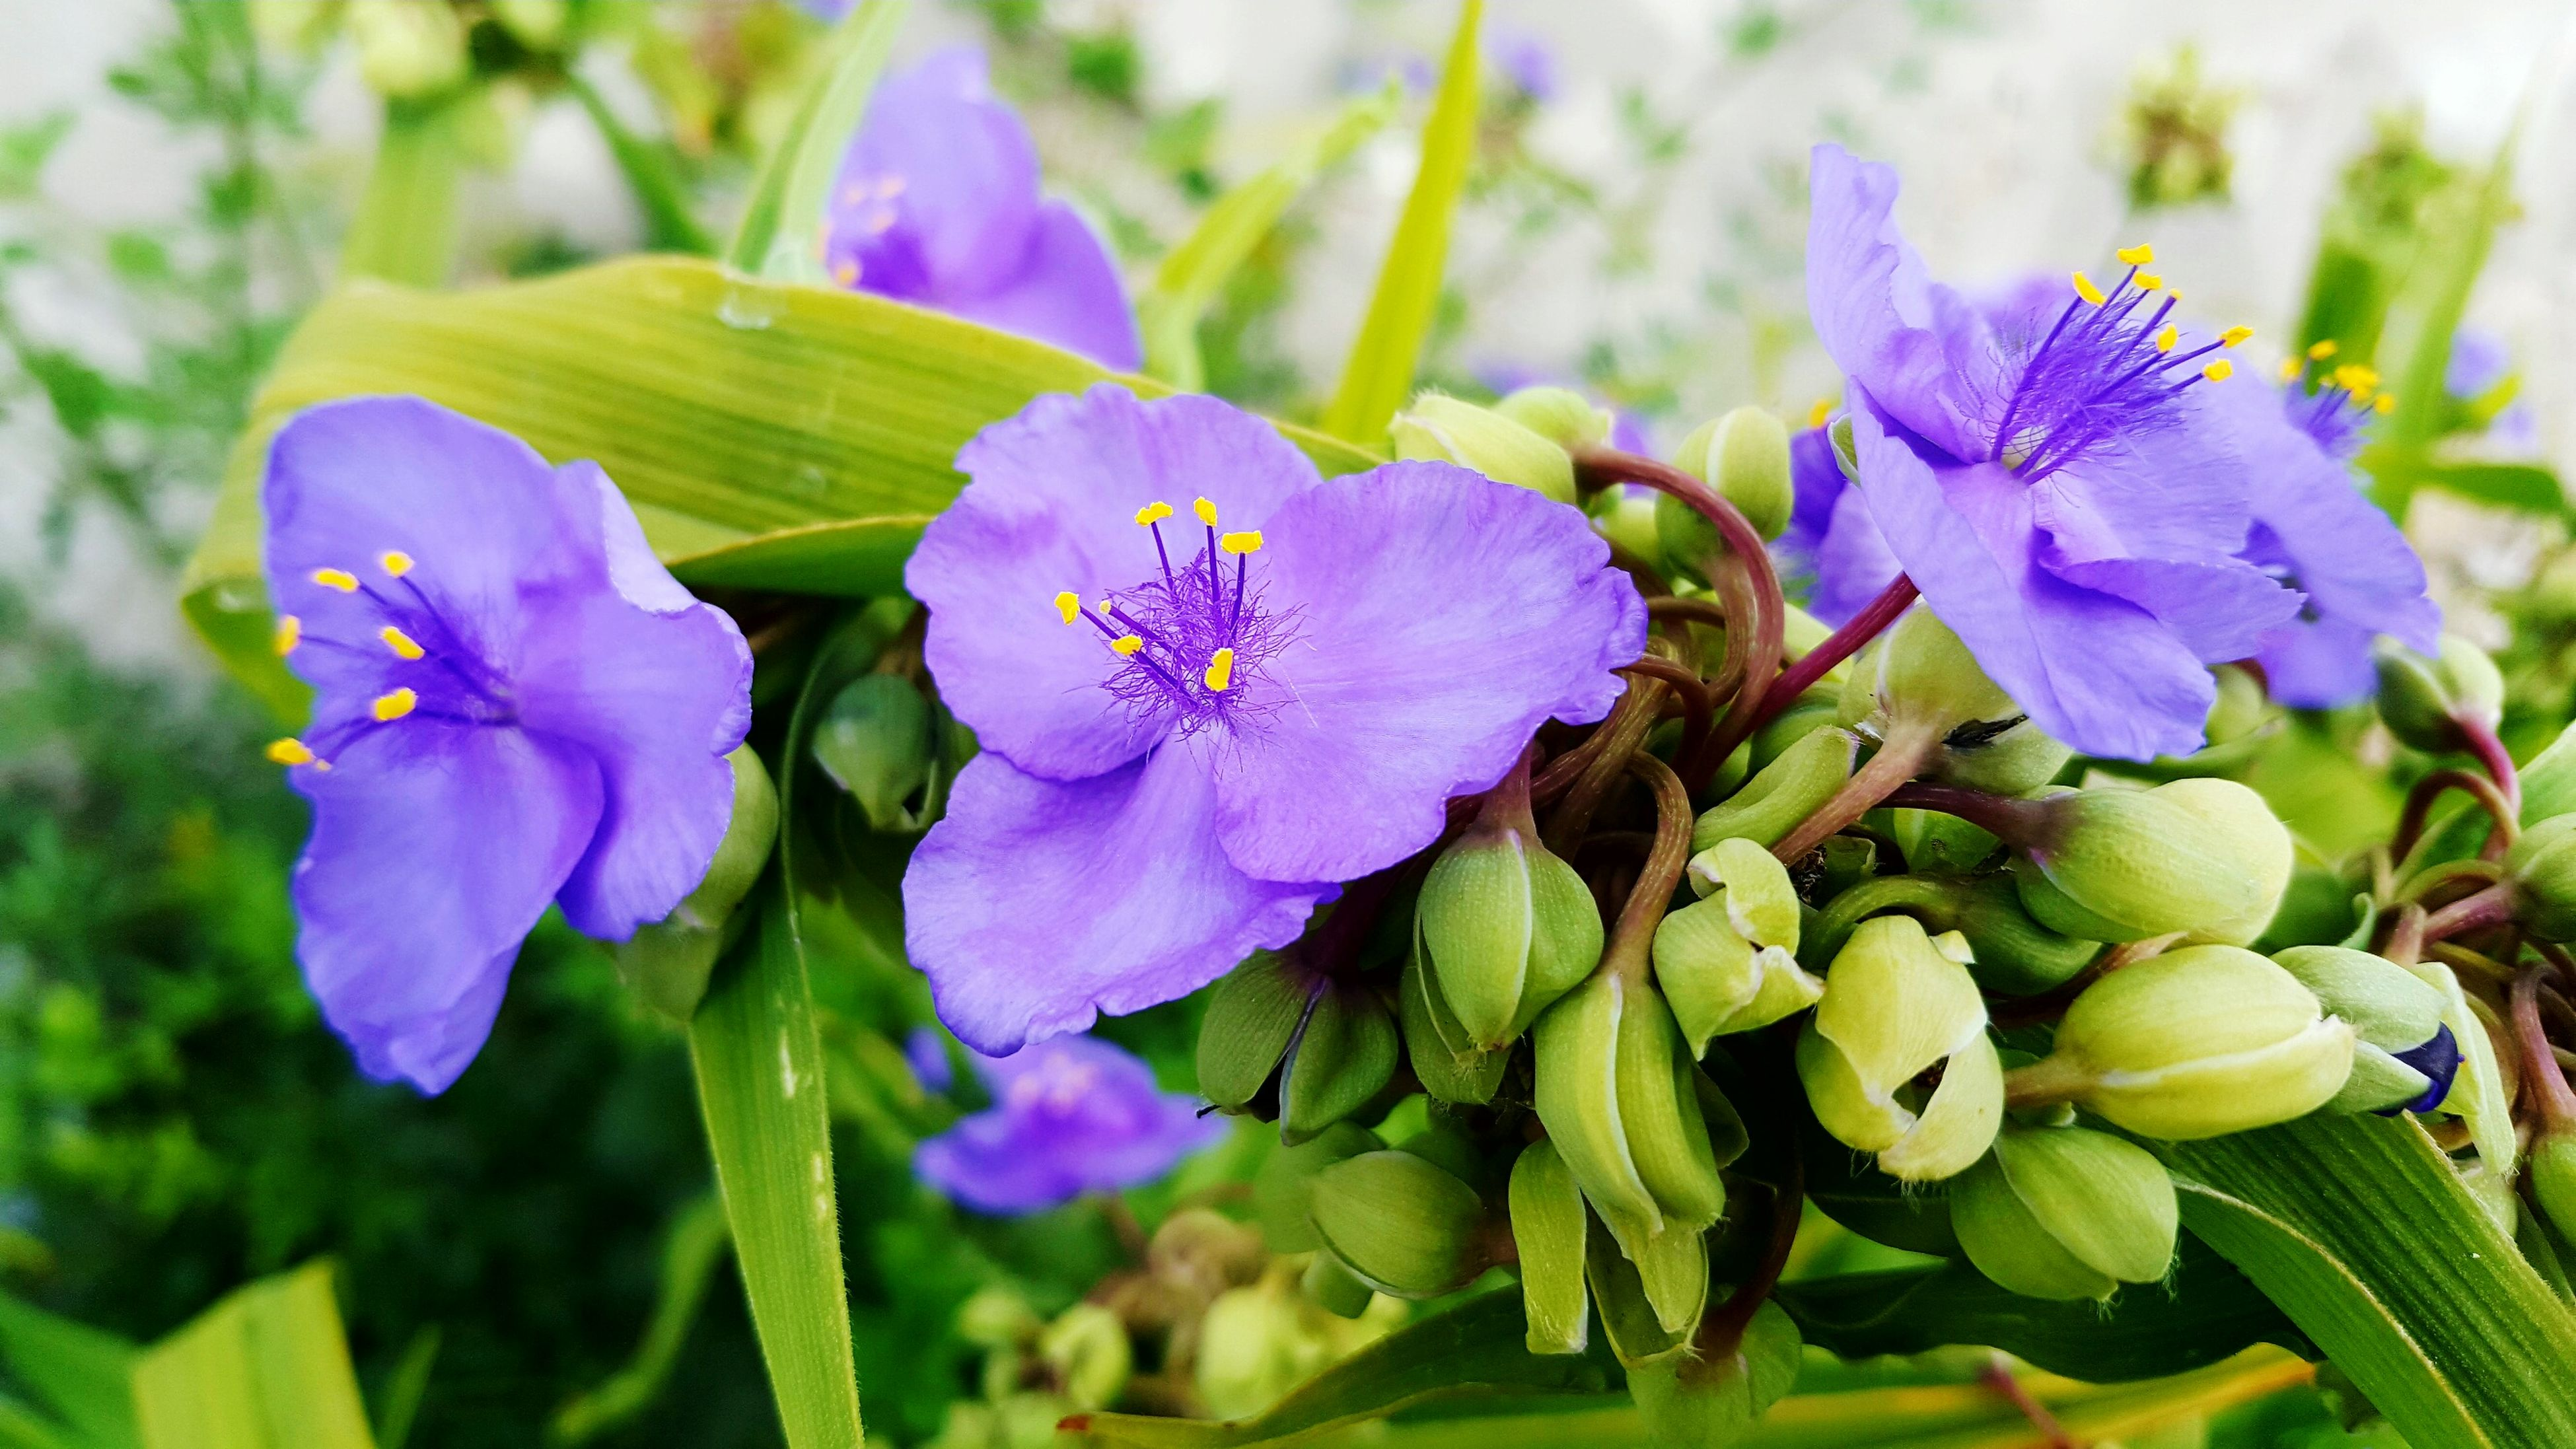 flower, freshness, purple, petal, fragility, flower head, growth, beauty in nature, close-up, plant, blooming, focus on foreground, nature, leaf, in bloom, day, pollen, park - man made space, outdoors, no people